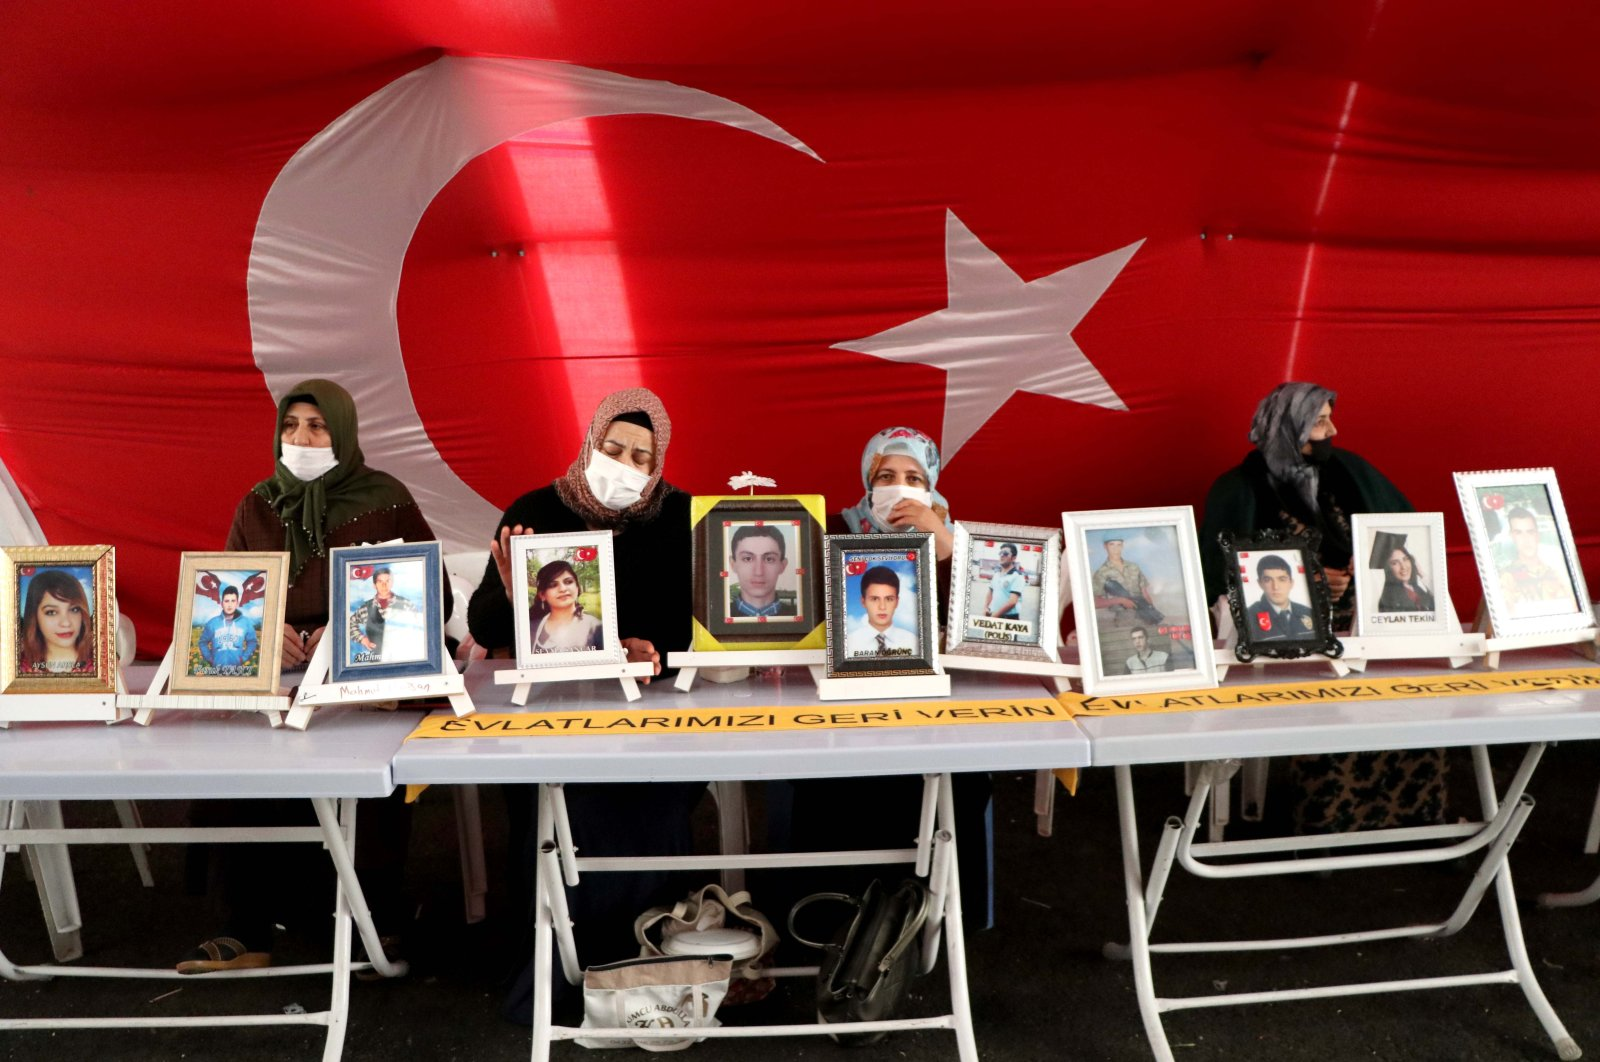 Mothers continue their sit-in protest in a tent displaying photos of their children abducted by the PKK terrorist group, set up outside the pro-PKK Peoples' Democratic Party (HDP) headquarters in Diyarbakır province, southeastern Turkey, Feb. 2, 2021. (AA Photo)